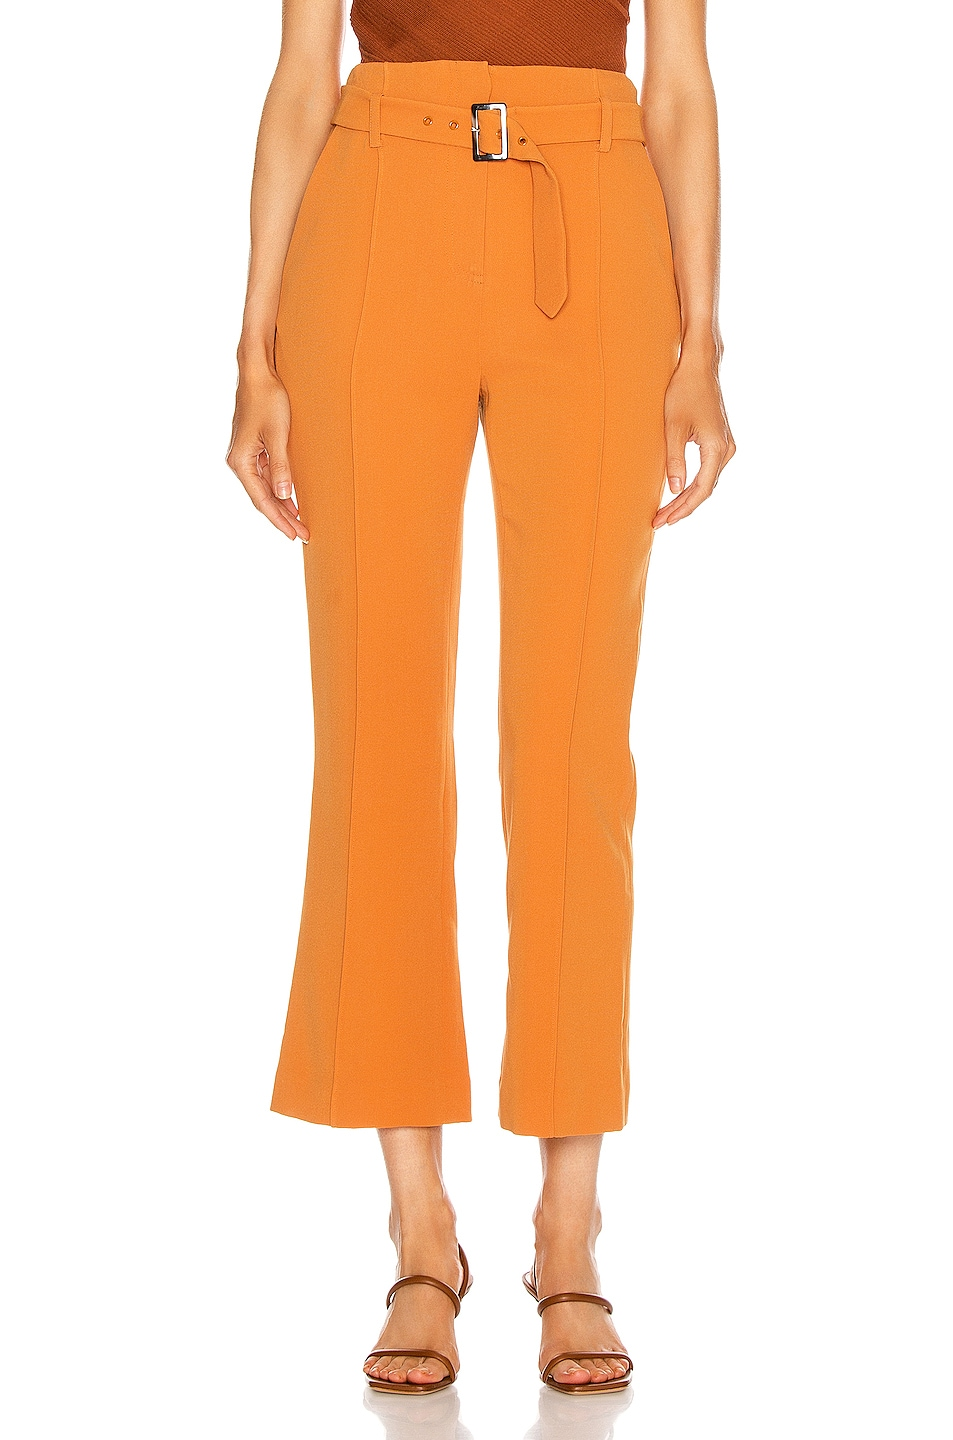 Image 1 of JONATHAN SIMKHAI Florence Crepe Belted Pant in Toffee